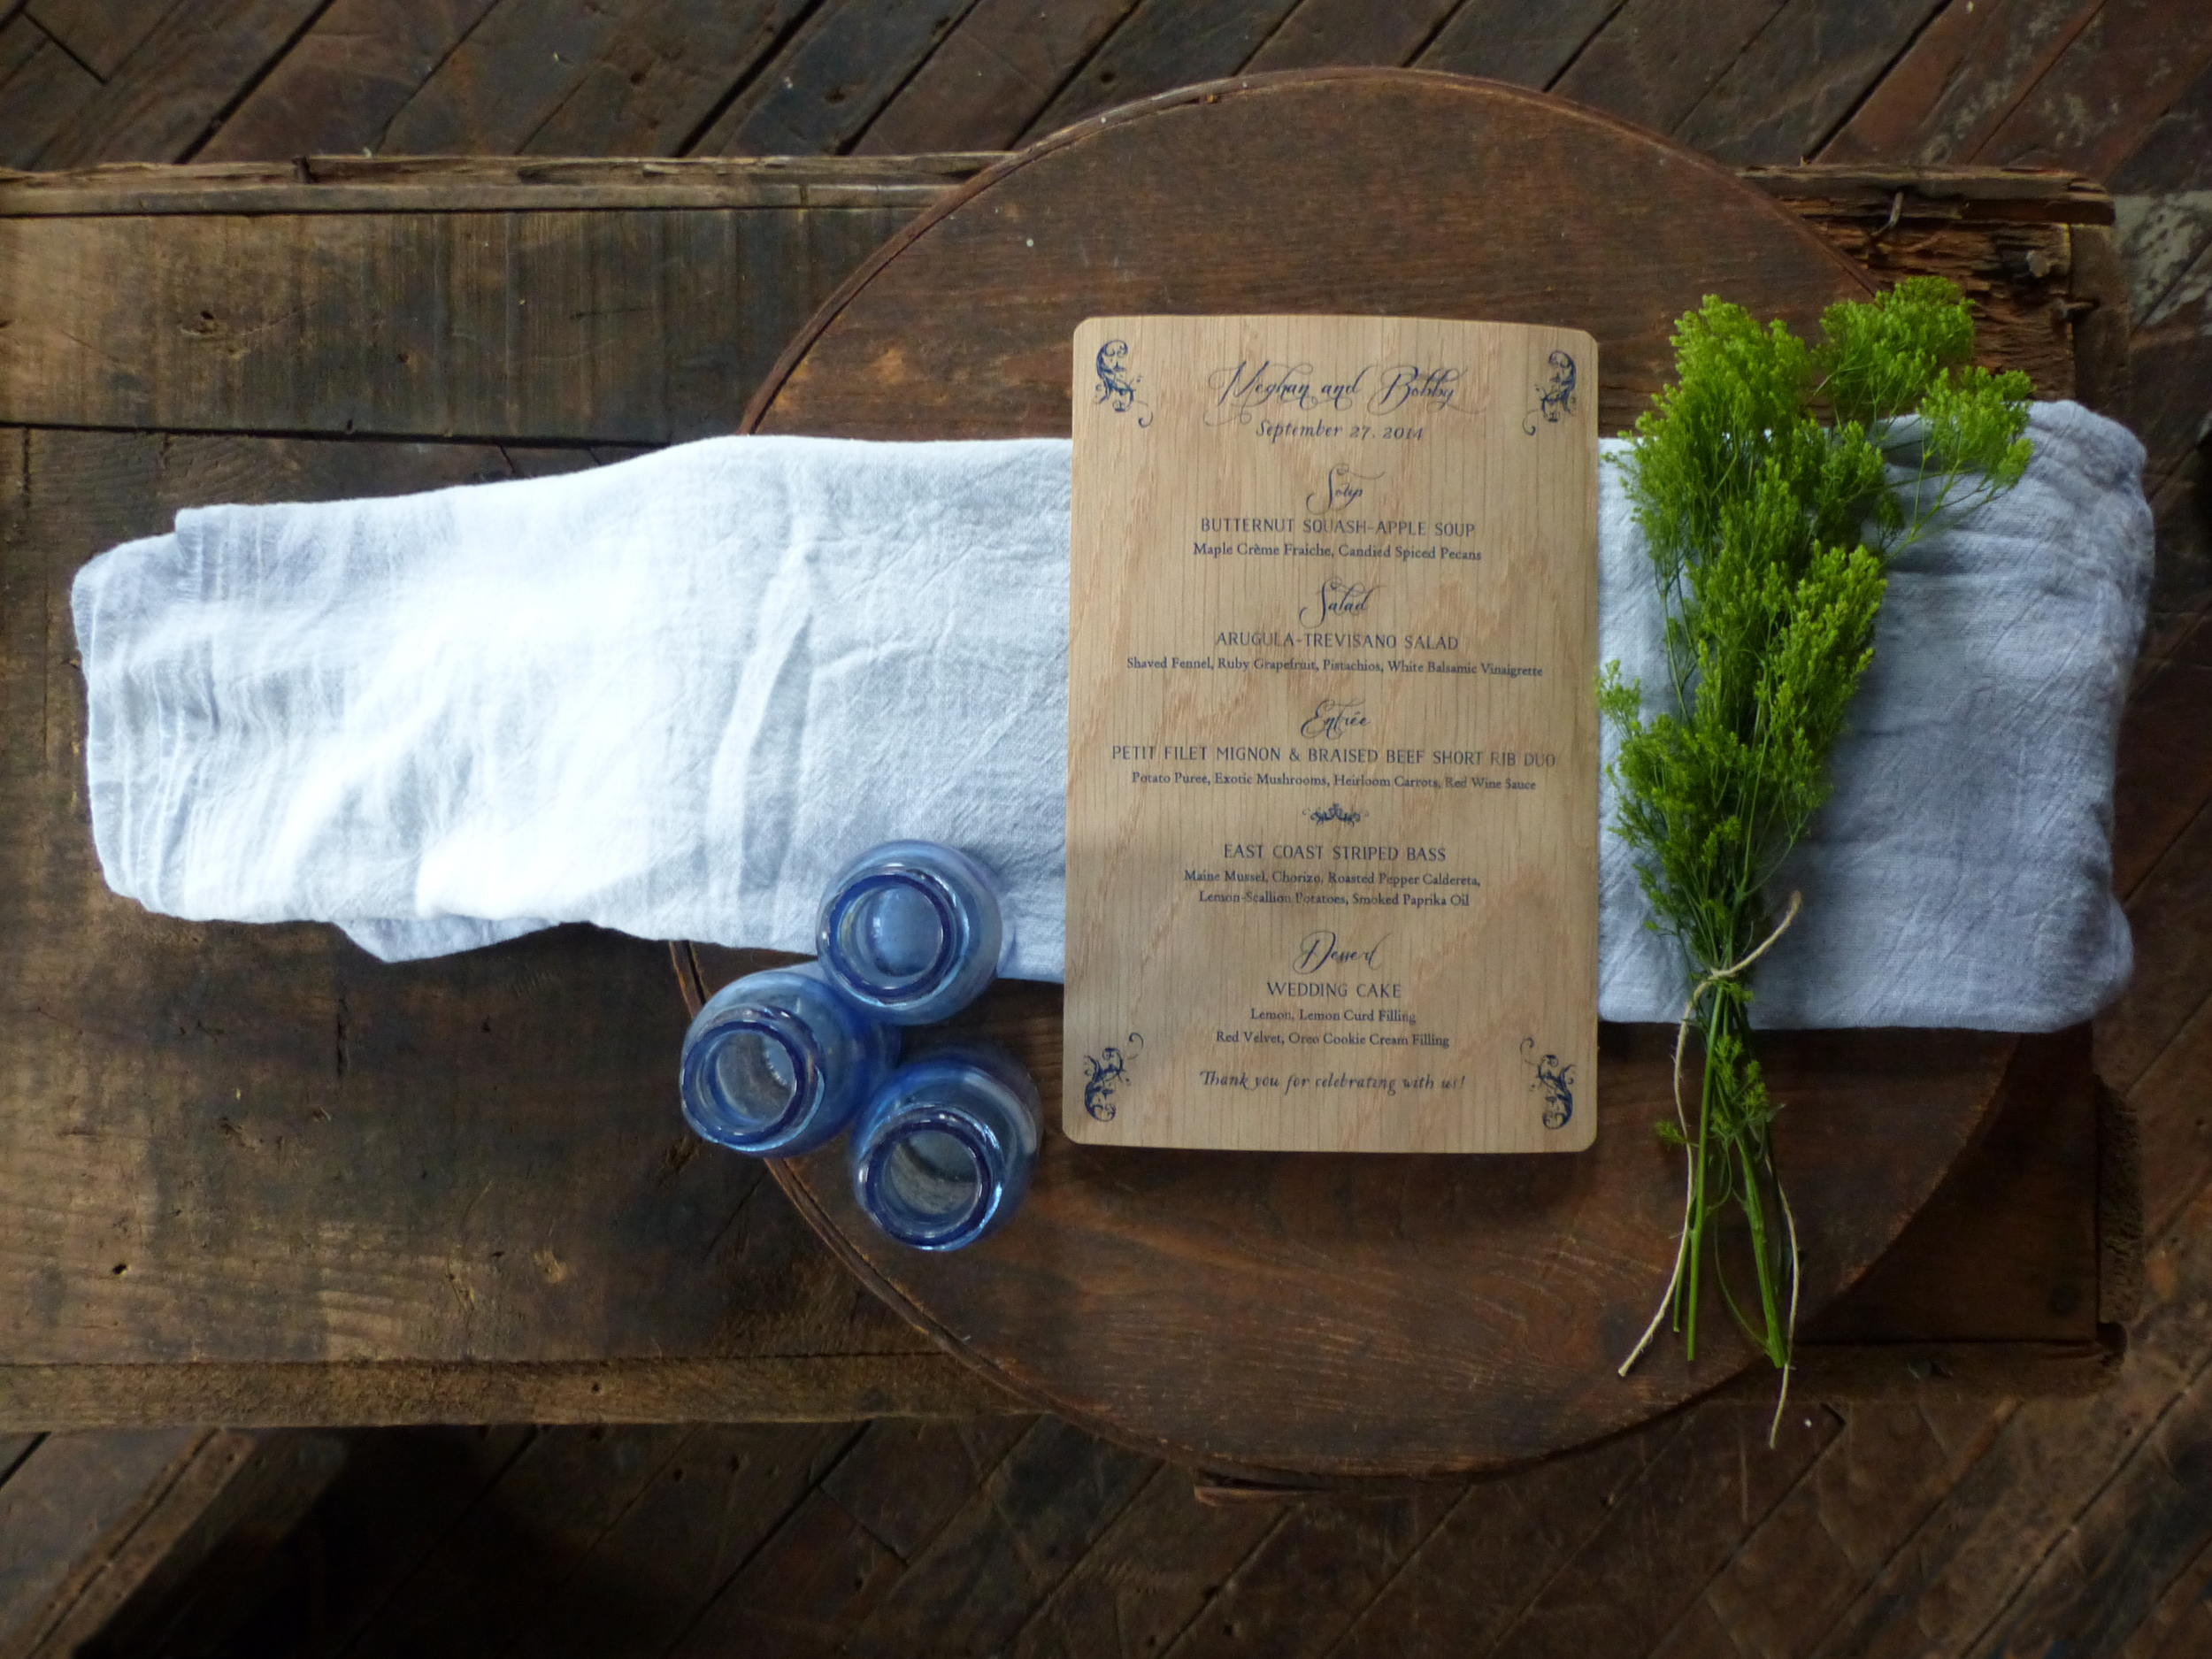 """Day Of Wedding"" pieces include a wood printed menu."